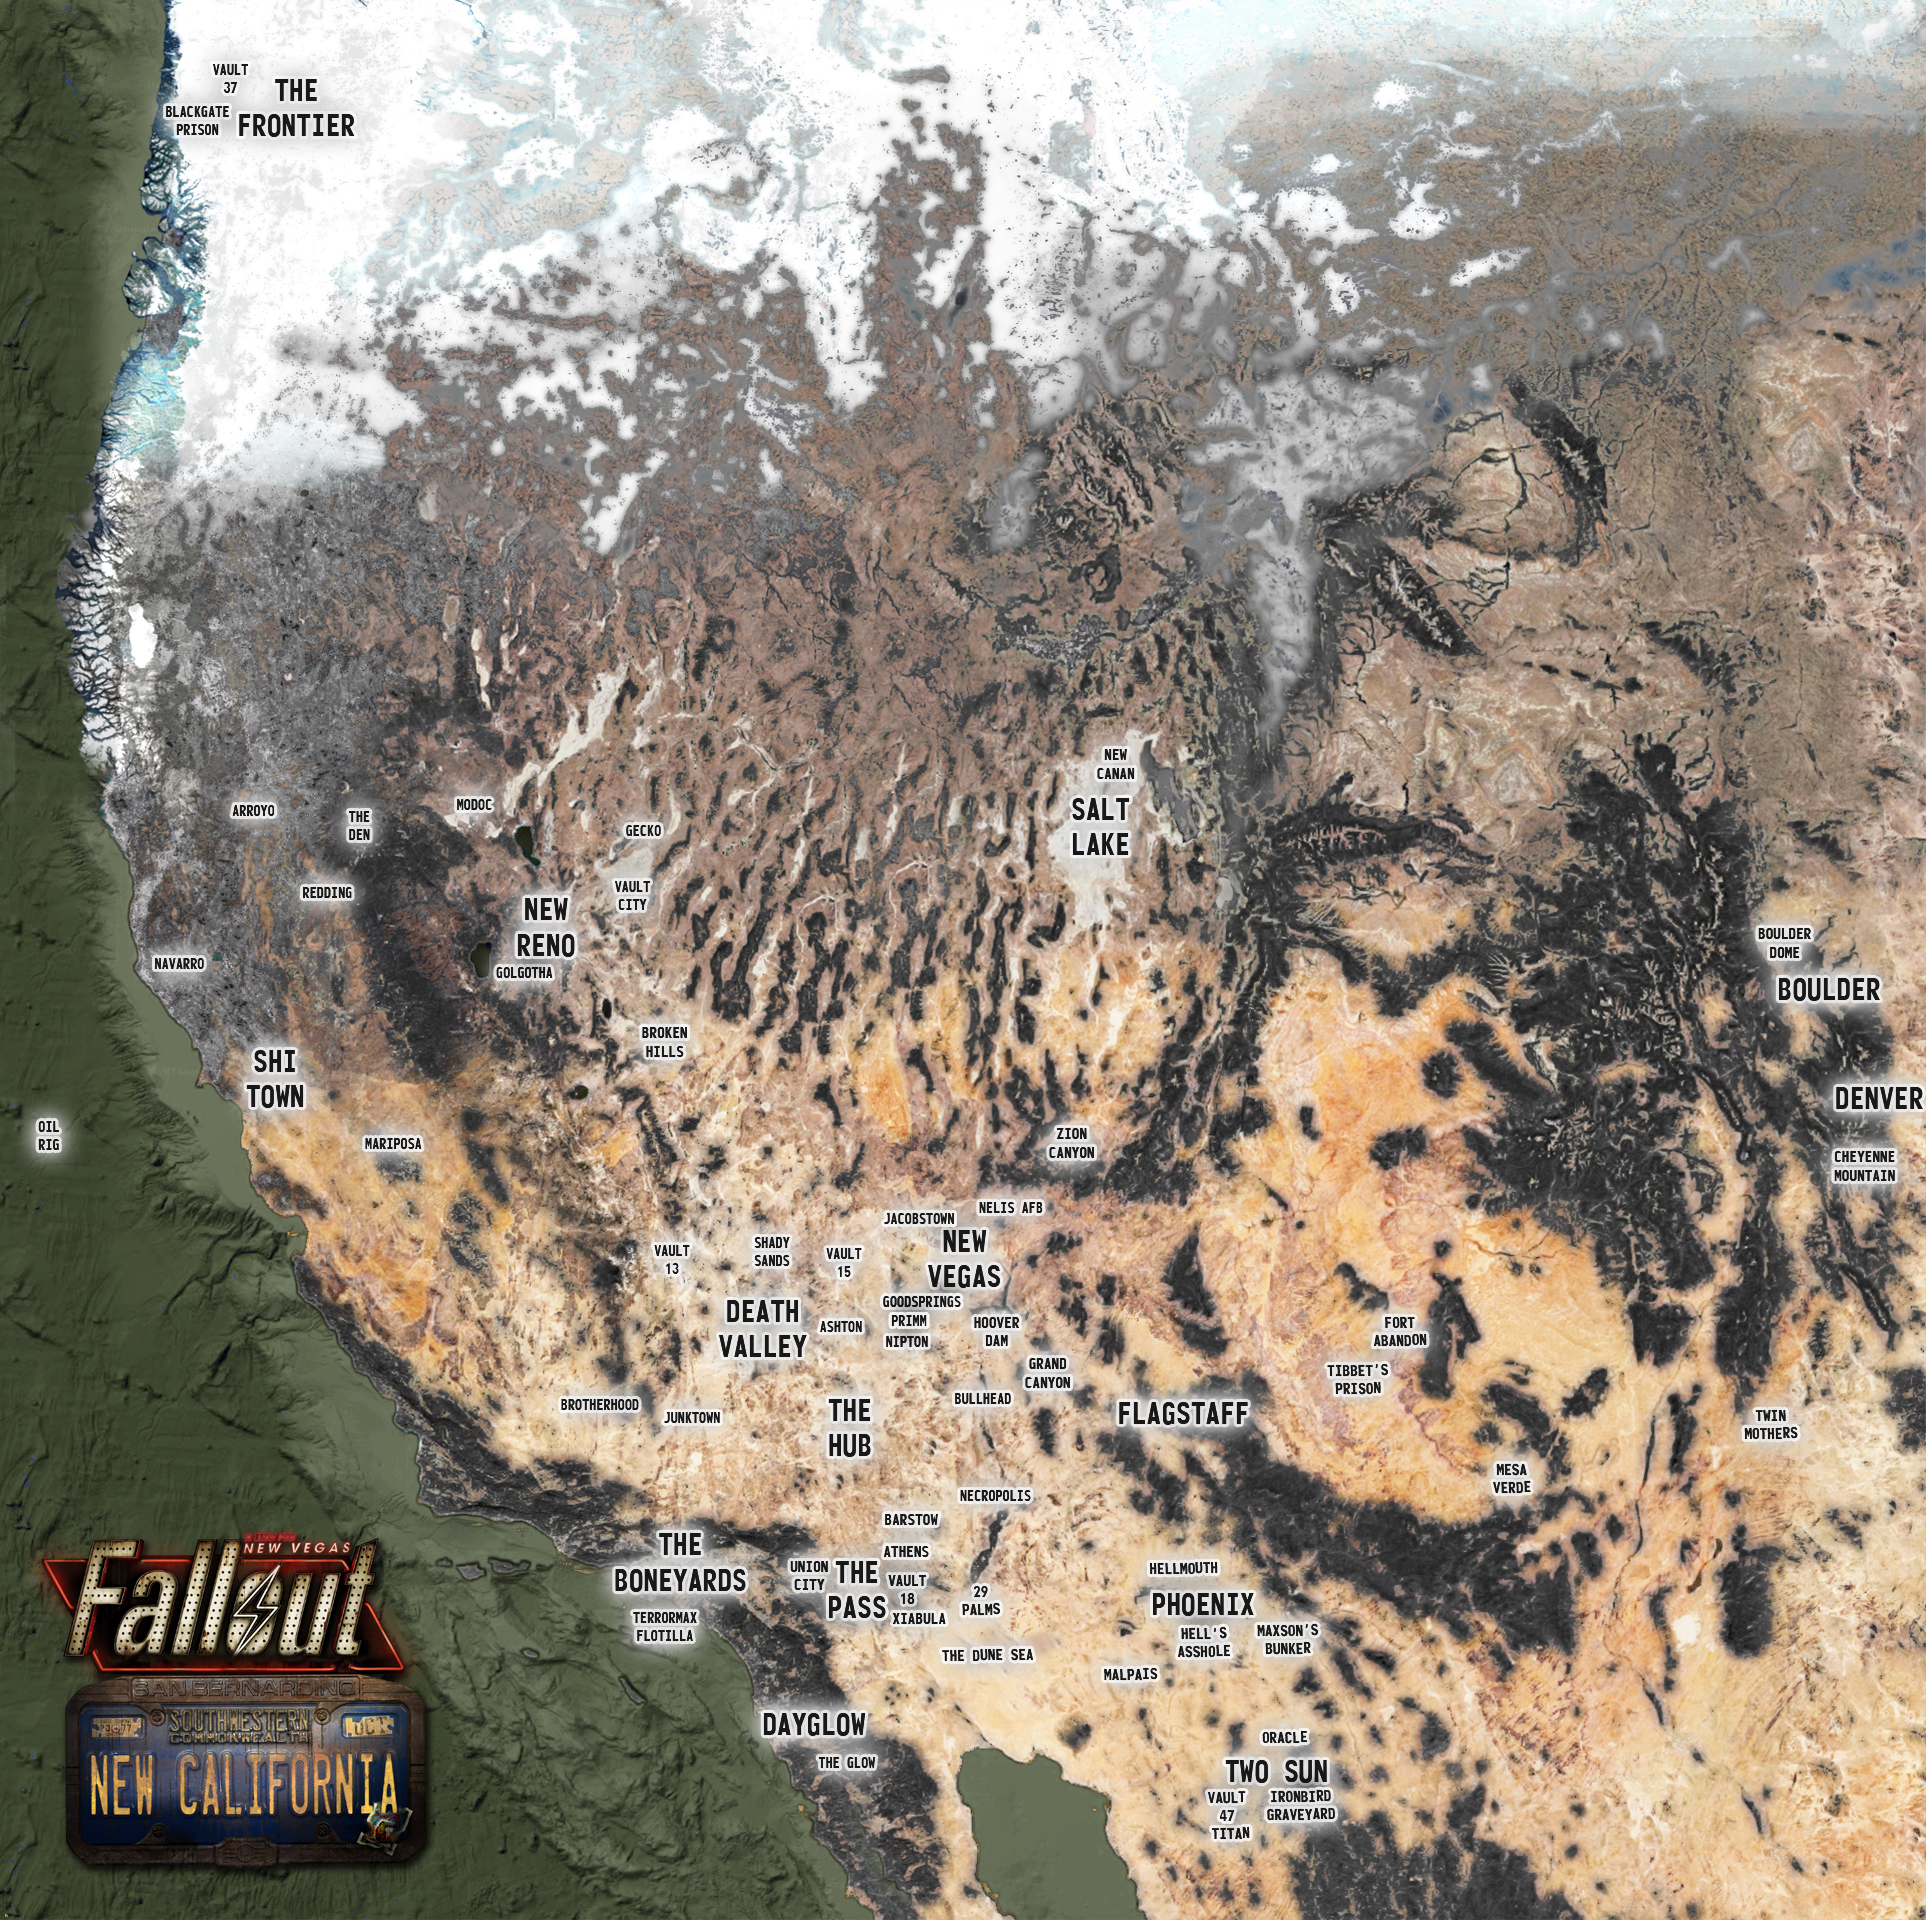 FALLOUT WORLD MAP 2260 image - Fallout: New California mod for ...